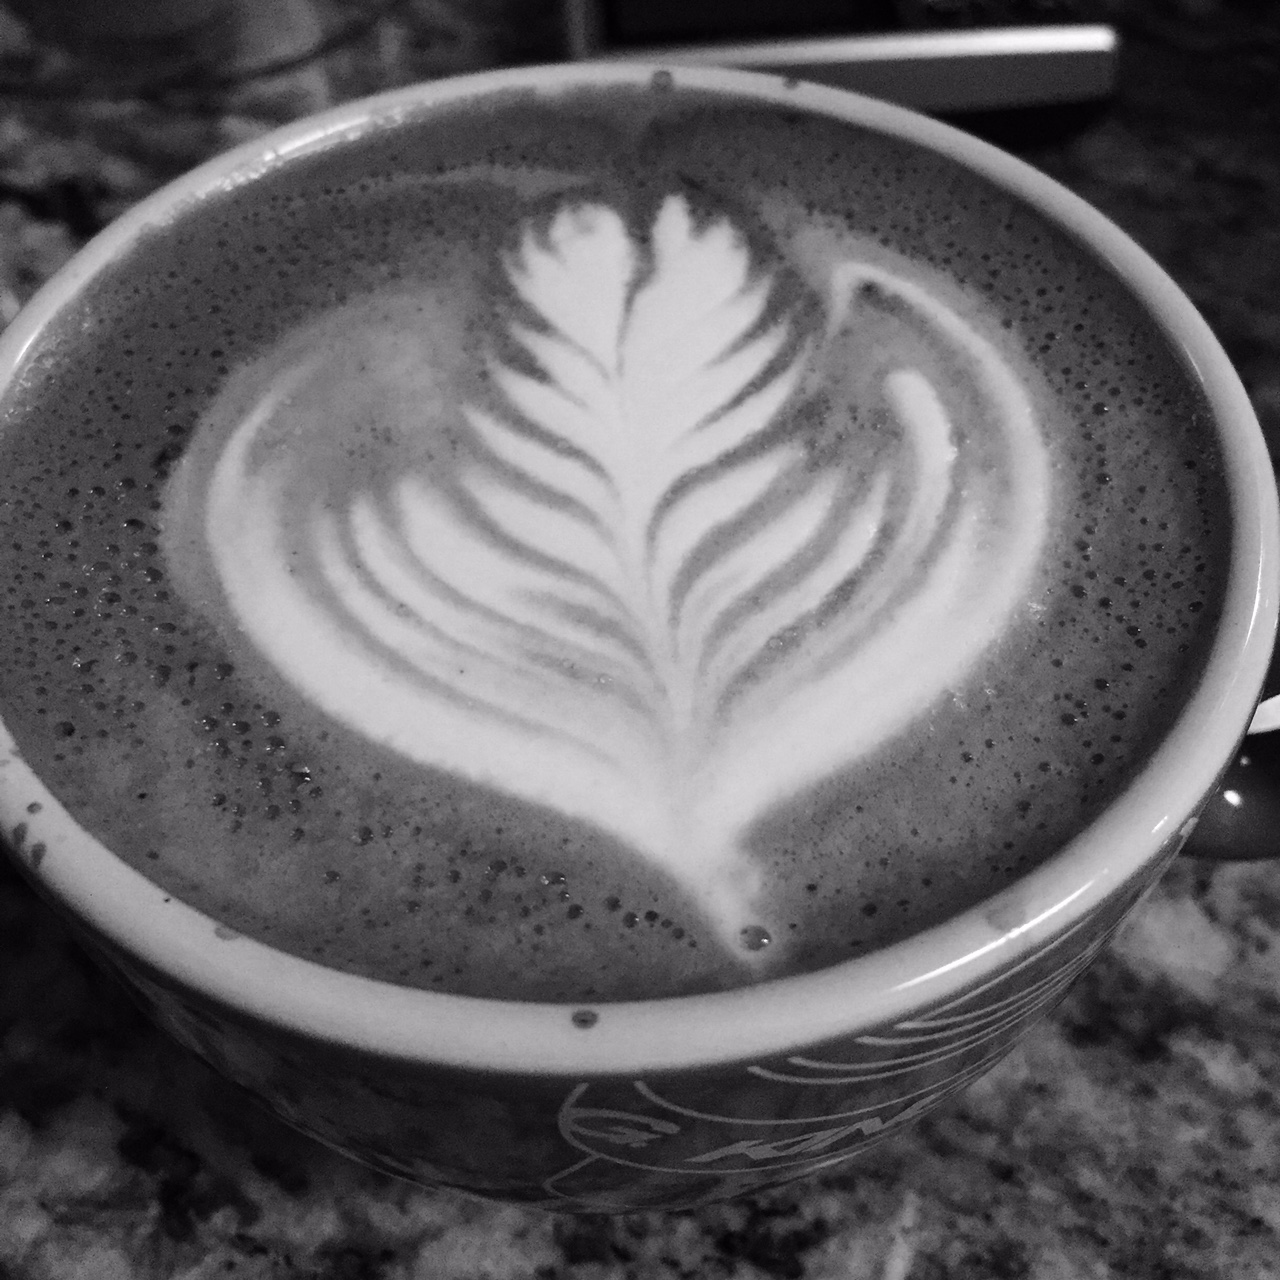 Been drinking too much espresso lately and my latte art is slipping :/